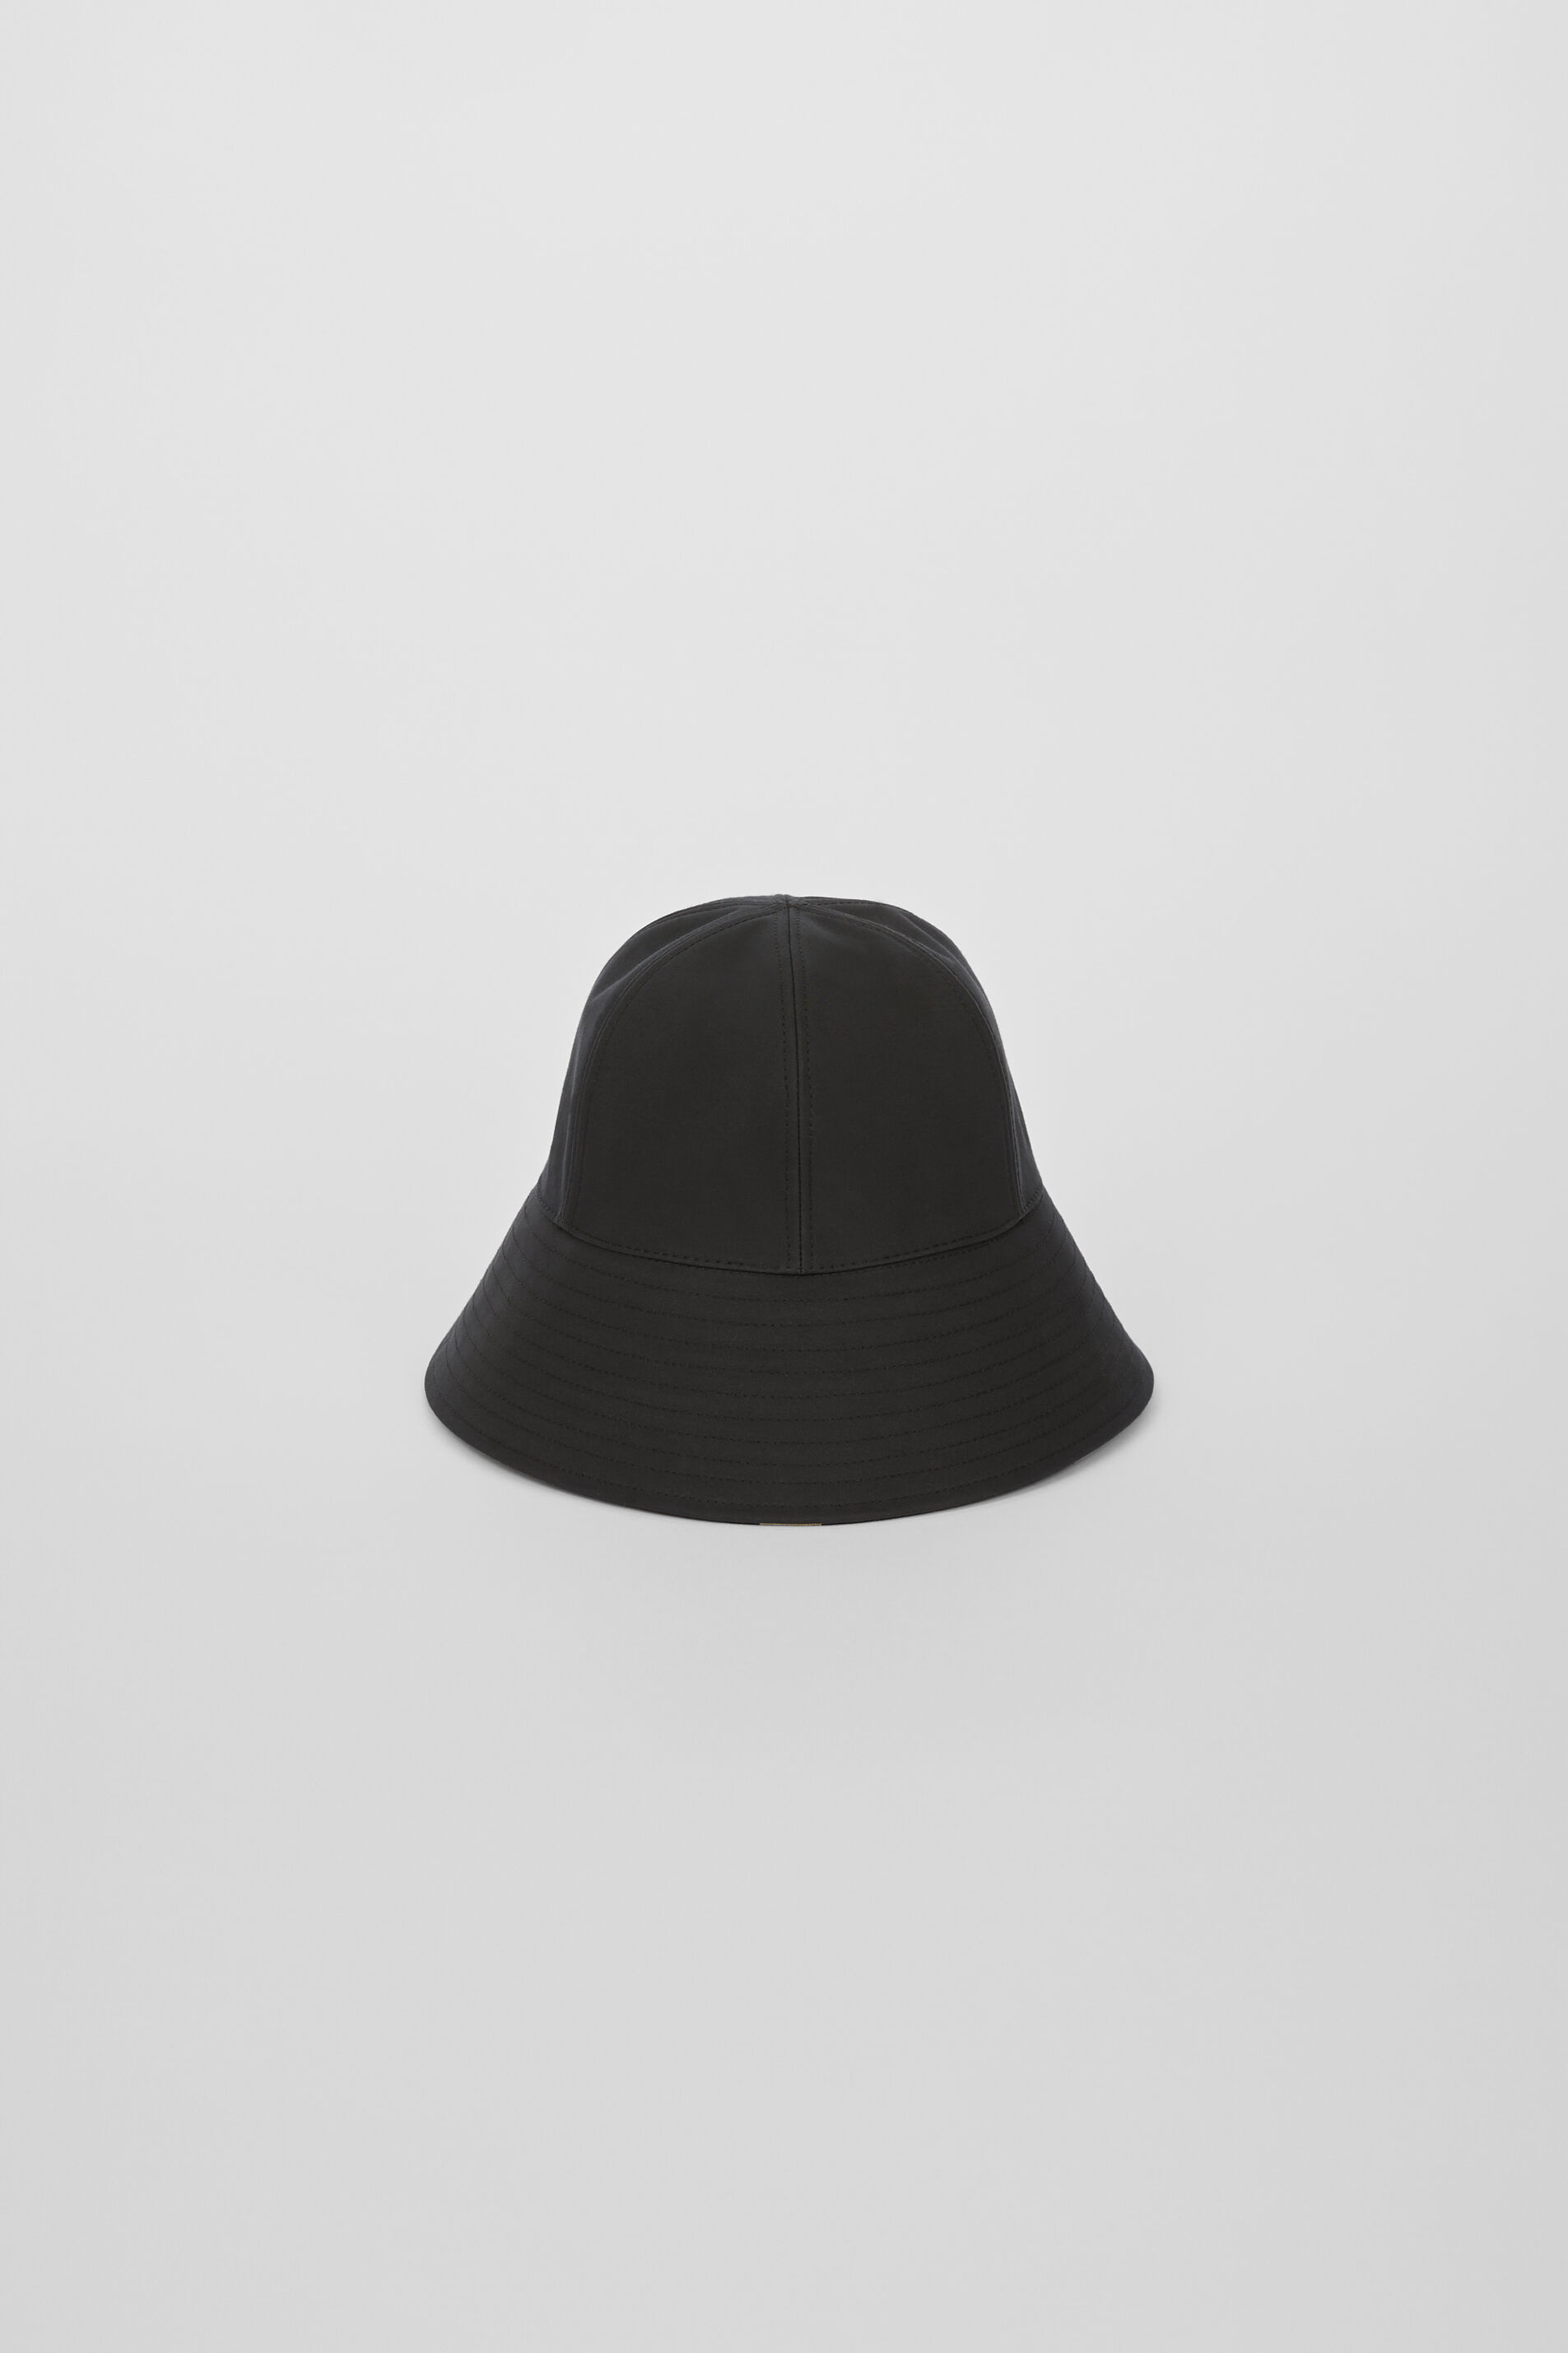 Hat, black, large